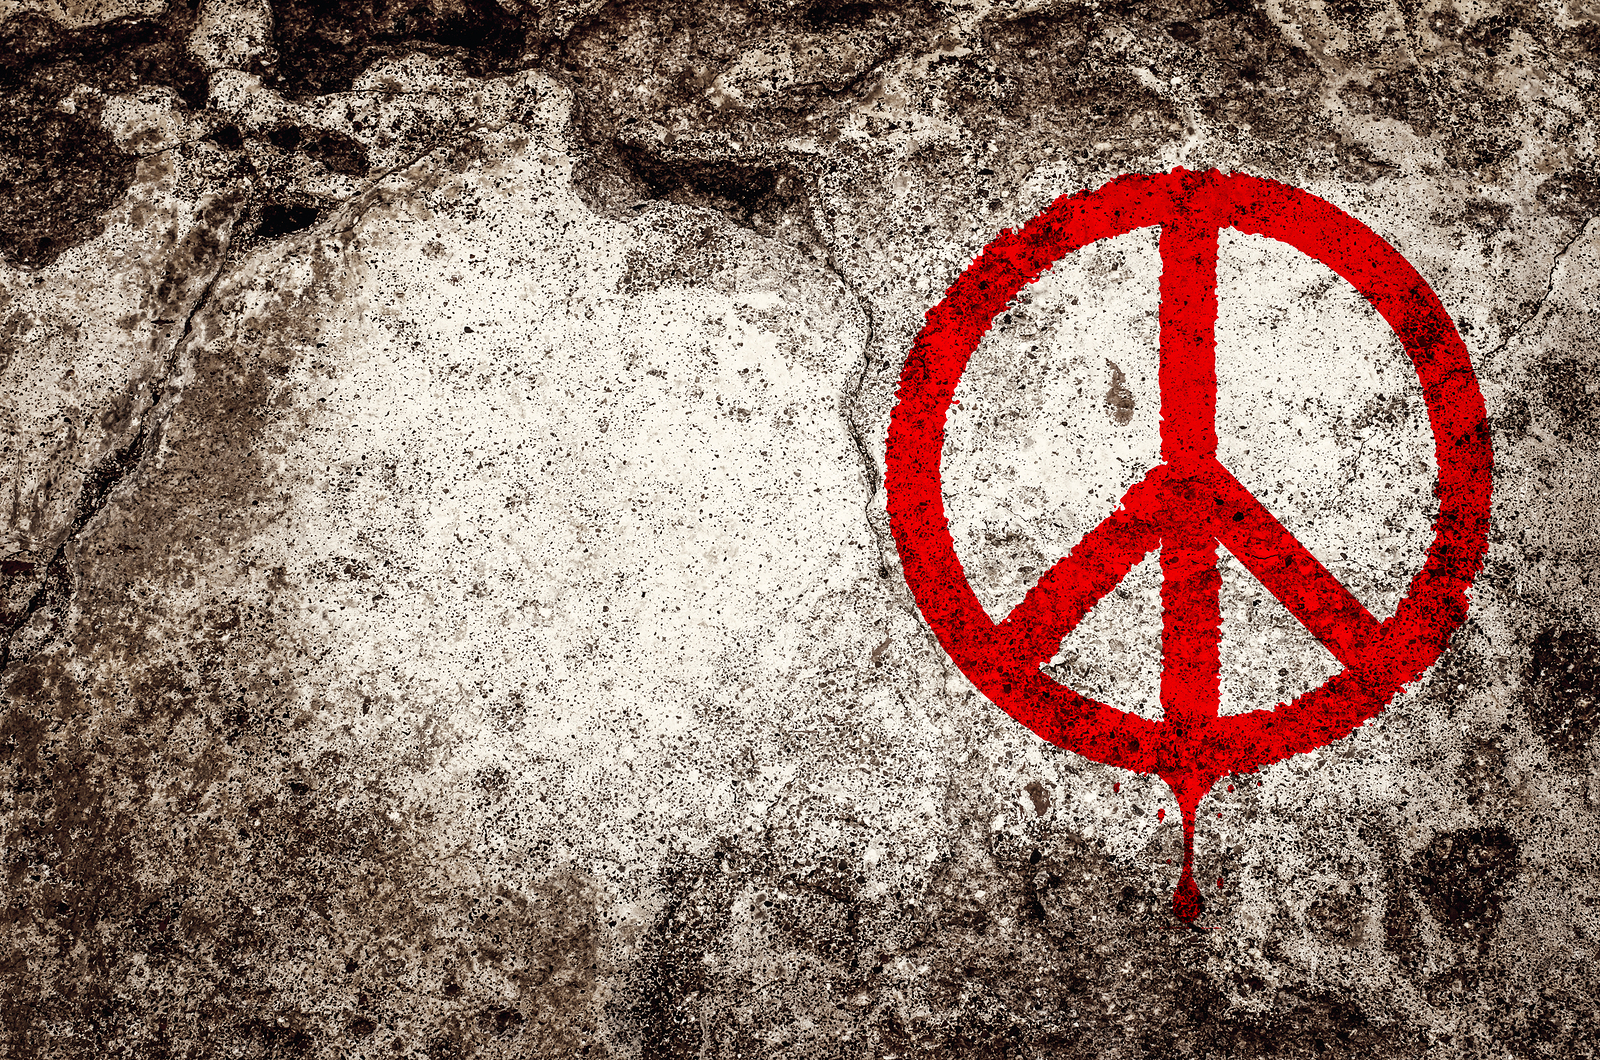 Red peace symbol graffiti on grunge cement wall - peace concept